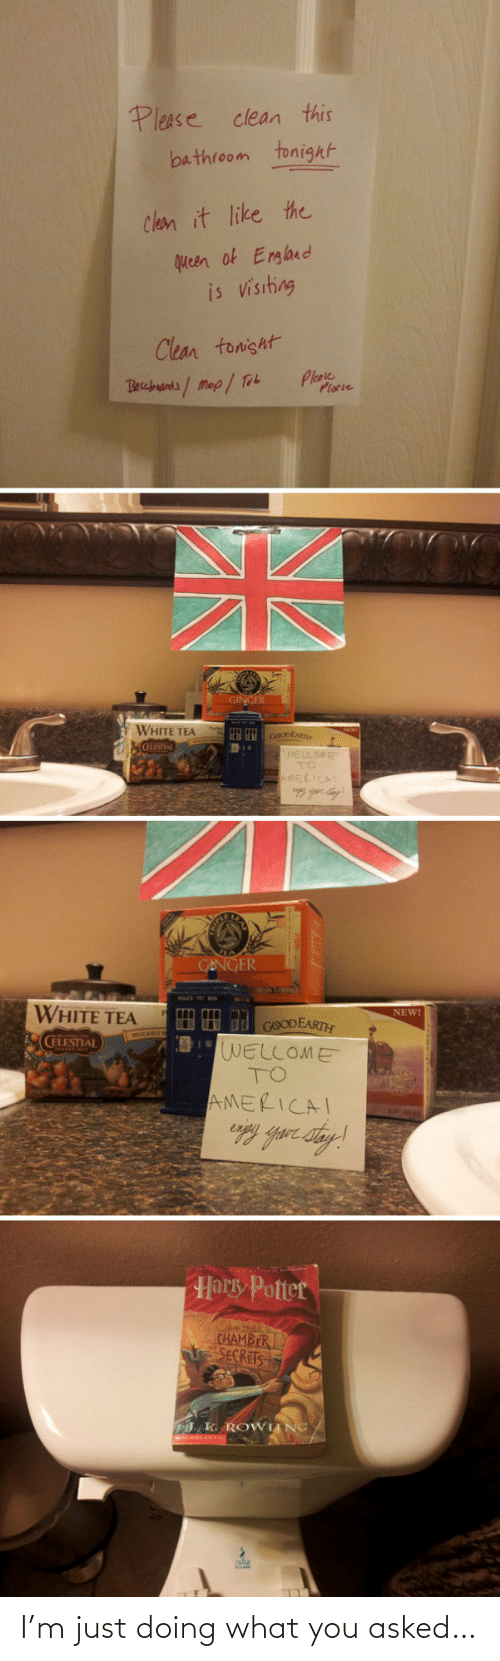 celestial: Please clean this  bathroom tonight  Clean it like the  queen of England  is visiting  Clean tonisht  Plase  Plocie  Becbuands/Map/ Tob  GINGER  WHITE TEA  cOoDEAR  WELLOME  TO  AMERICAL  GENGER  WHITE TEA  NEW!  HH d GOODEARTH  WELLOME  TO  CELESTIAL  AMERICAI  Harky Potter  D THE  CHAMBER  SECRETS  . K. ROWIING/ I'm just doing what you asked…